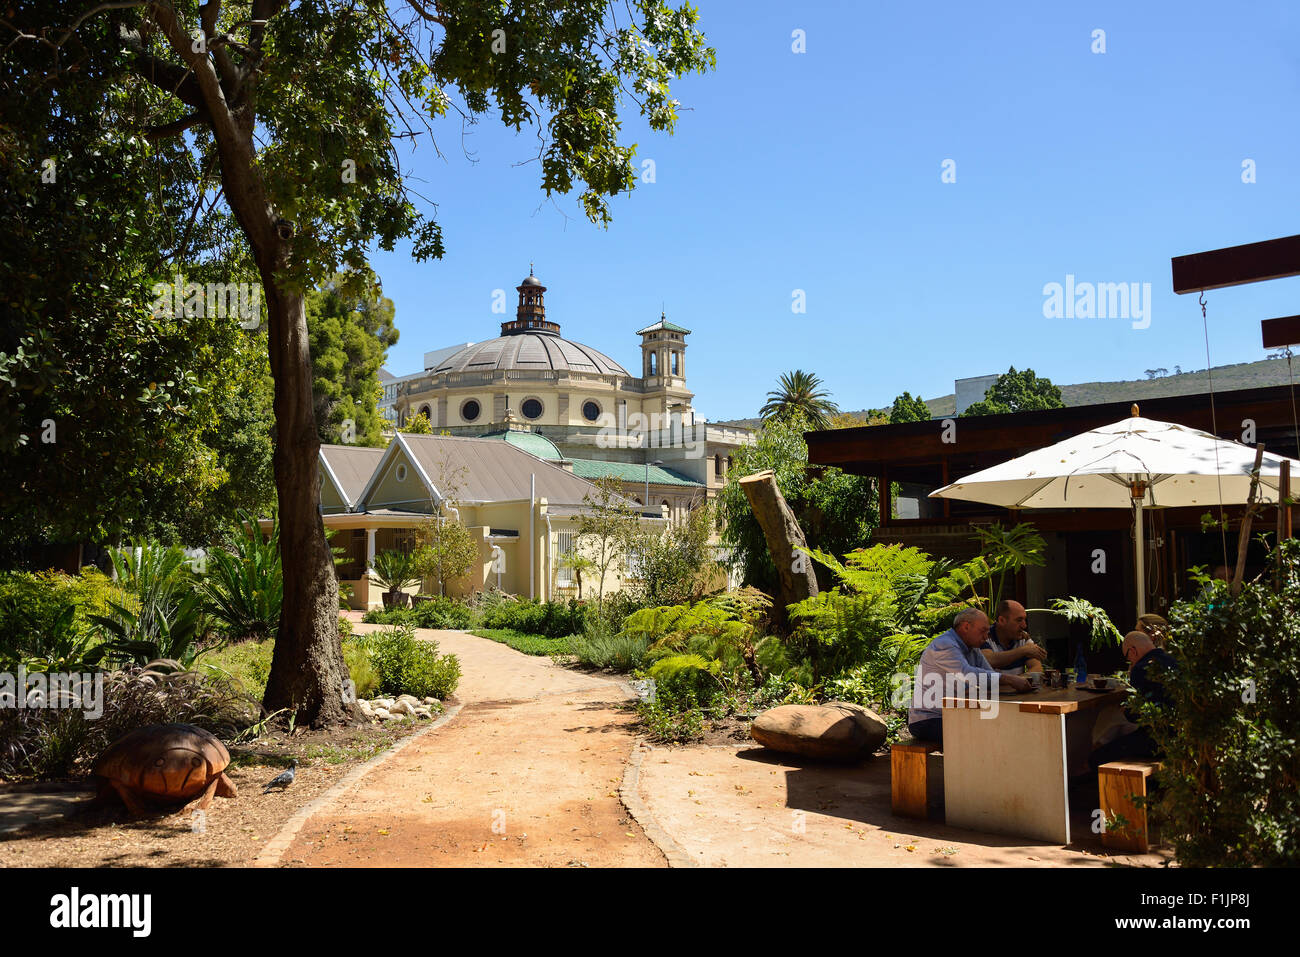 Centre for the Book and restaurant, The Public Garden, Cape Town, Western Cape Province, Republic of South Africa - Stock Image